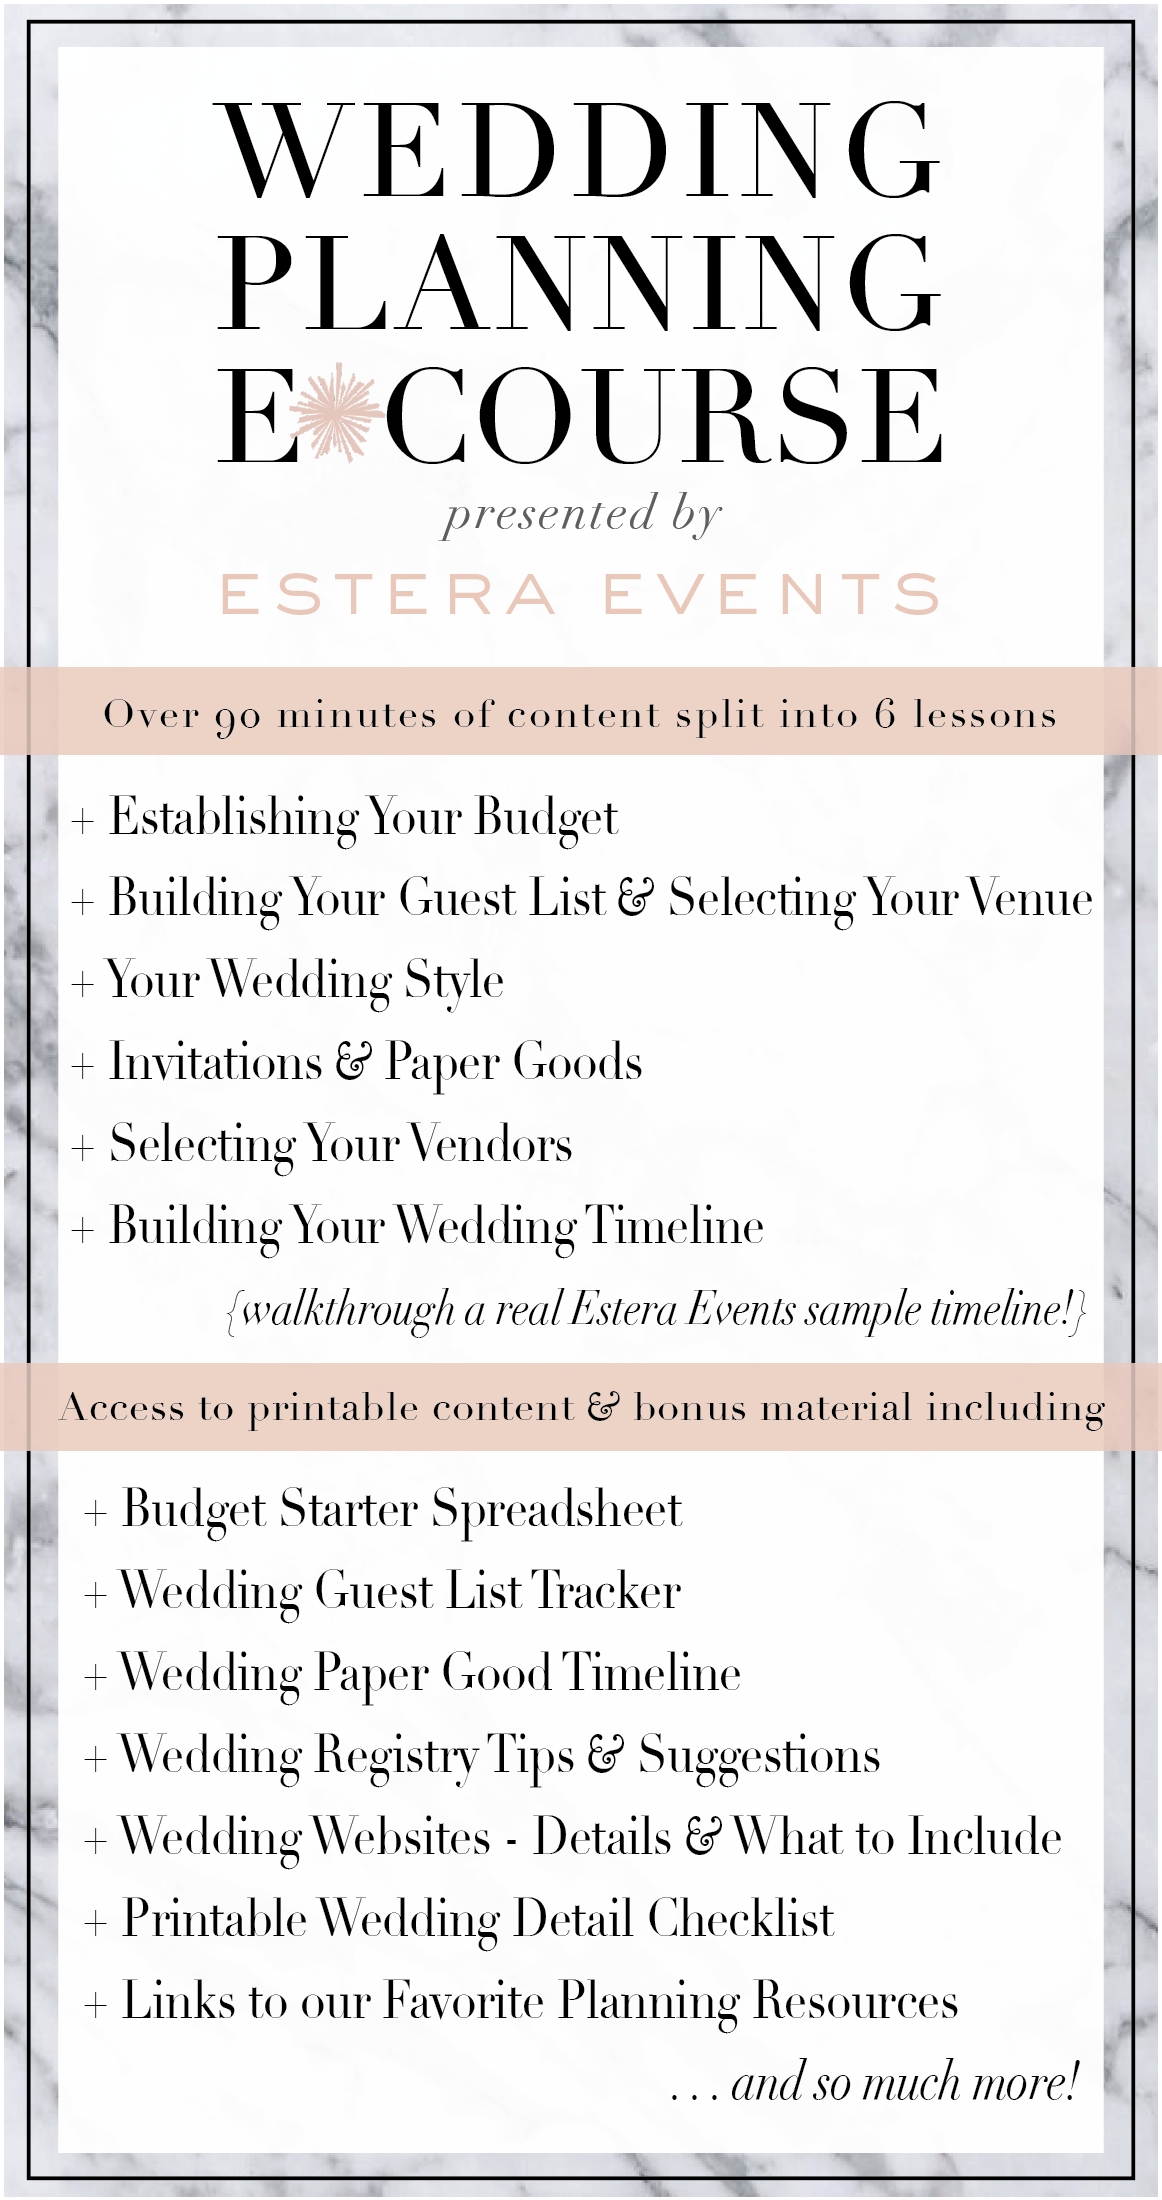 The Estera Events Wedding Planning E Course Is Designed To Give You Access To Useful Tools And Profession How To Plan Wedding Planning Wedding Checklist Budget